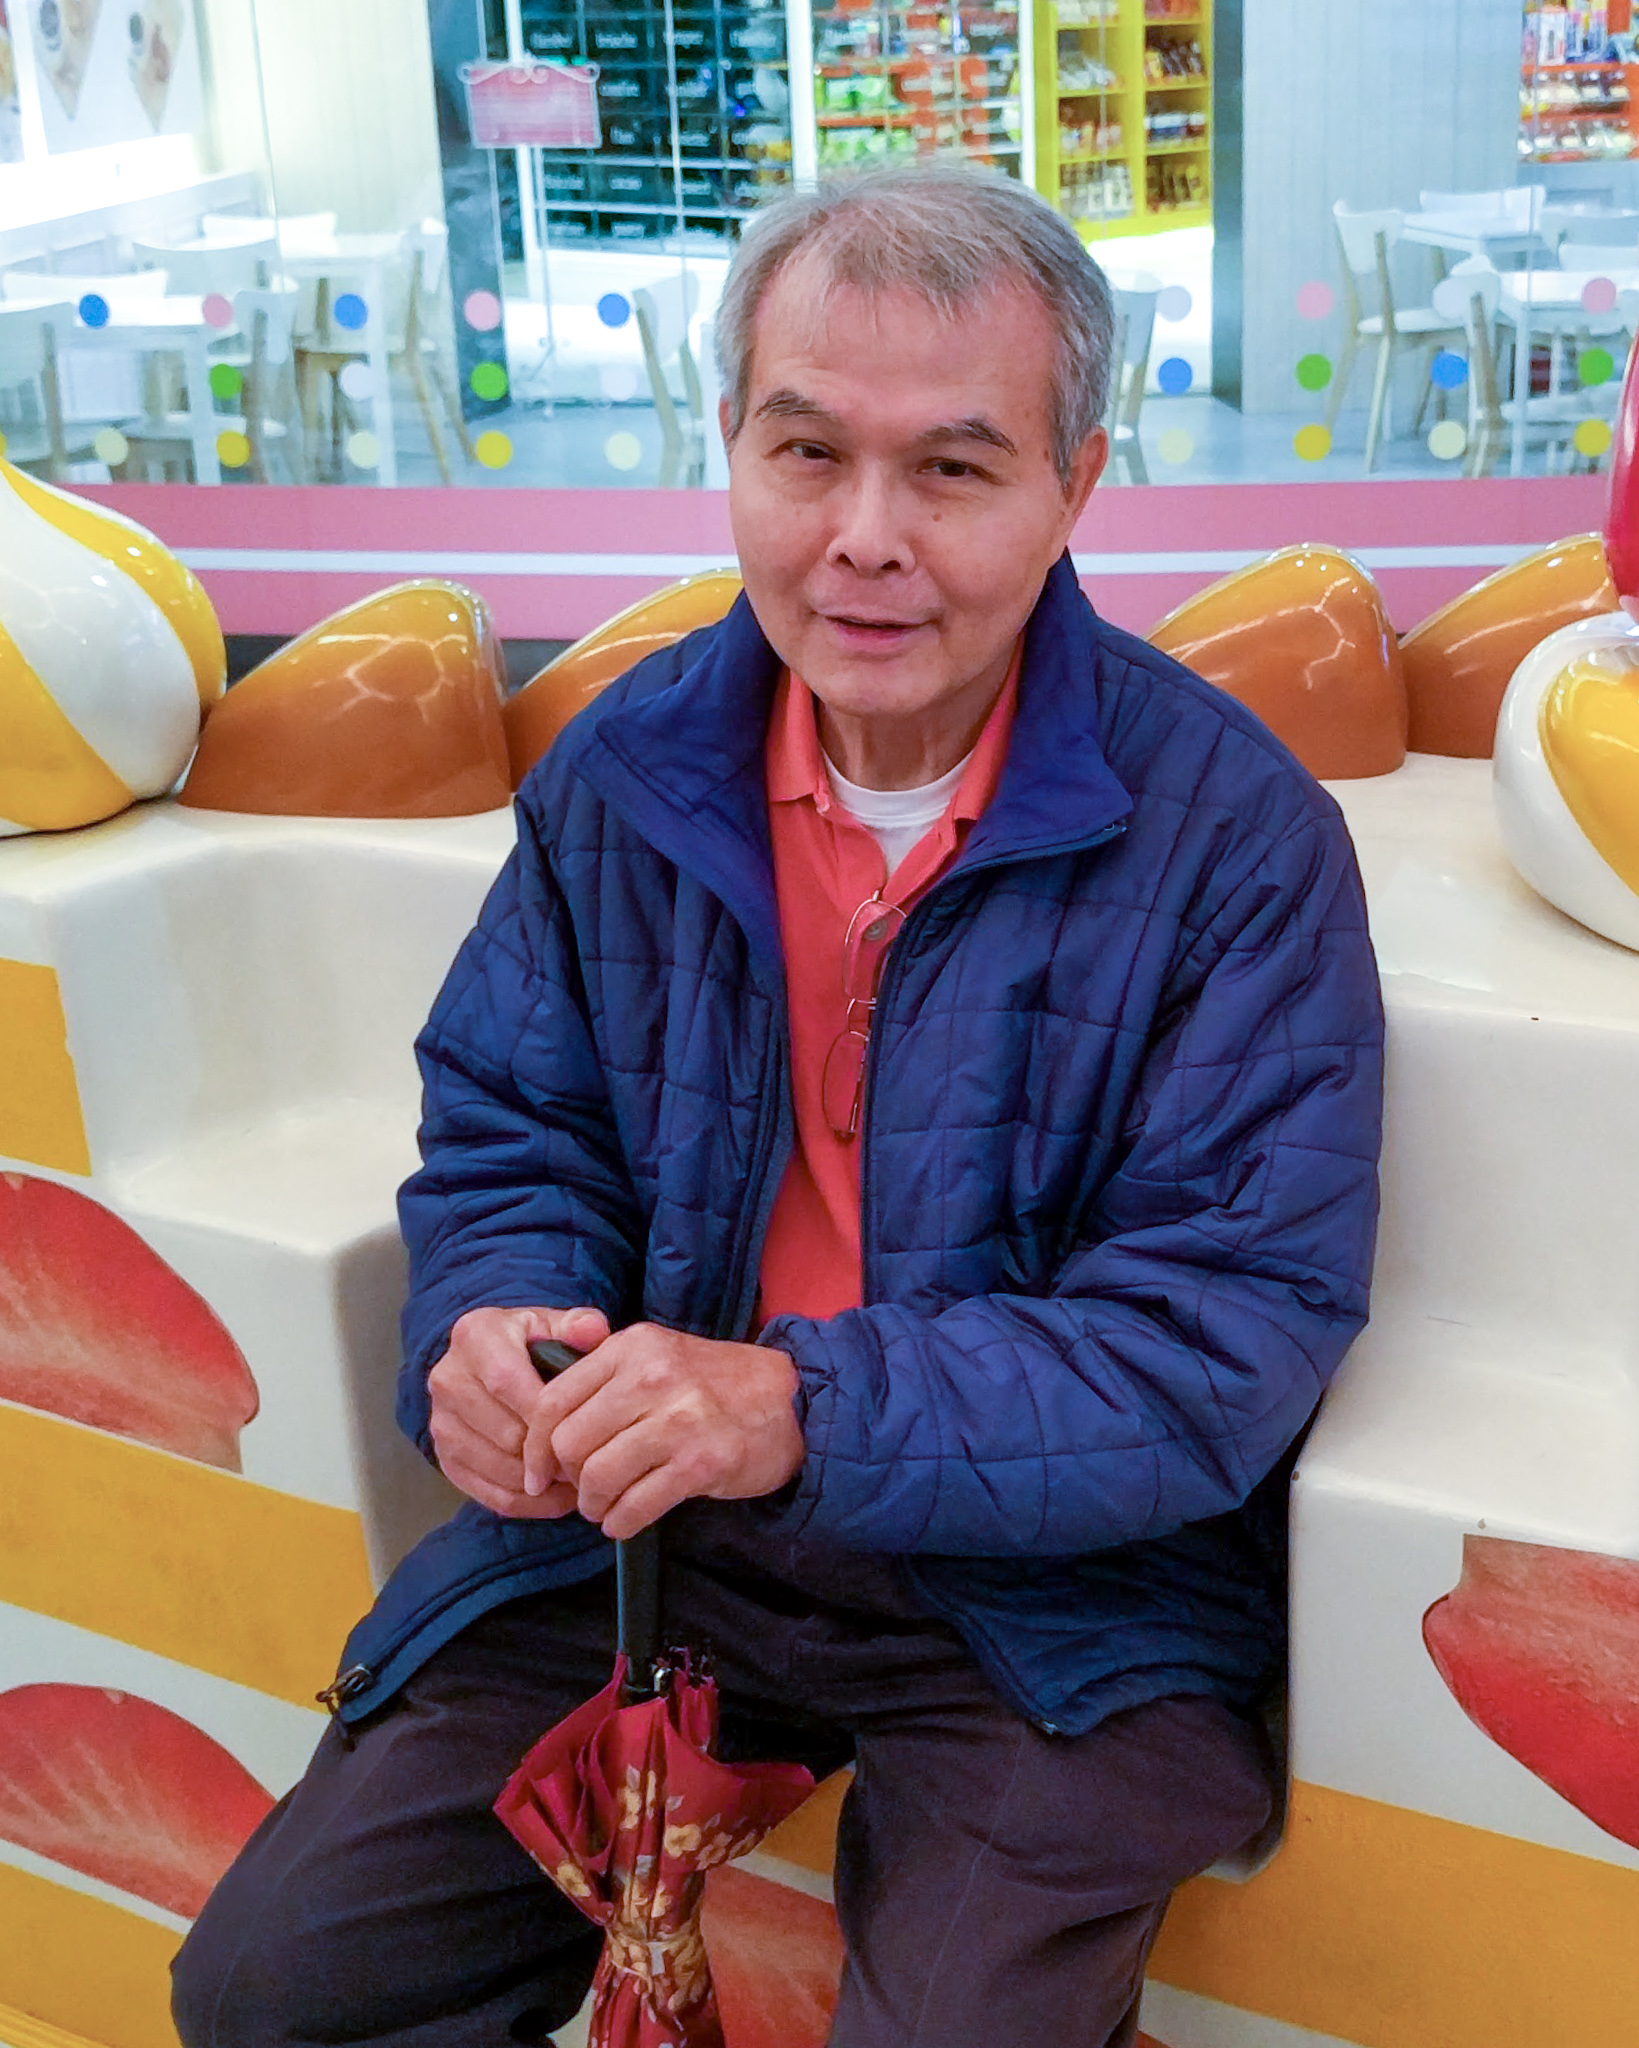 Ada's Dad, Yuan, sitting on a bench shaped like a slice of cake, while holding a cane